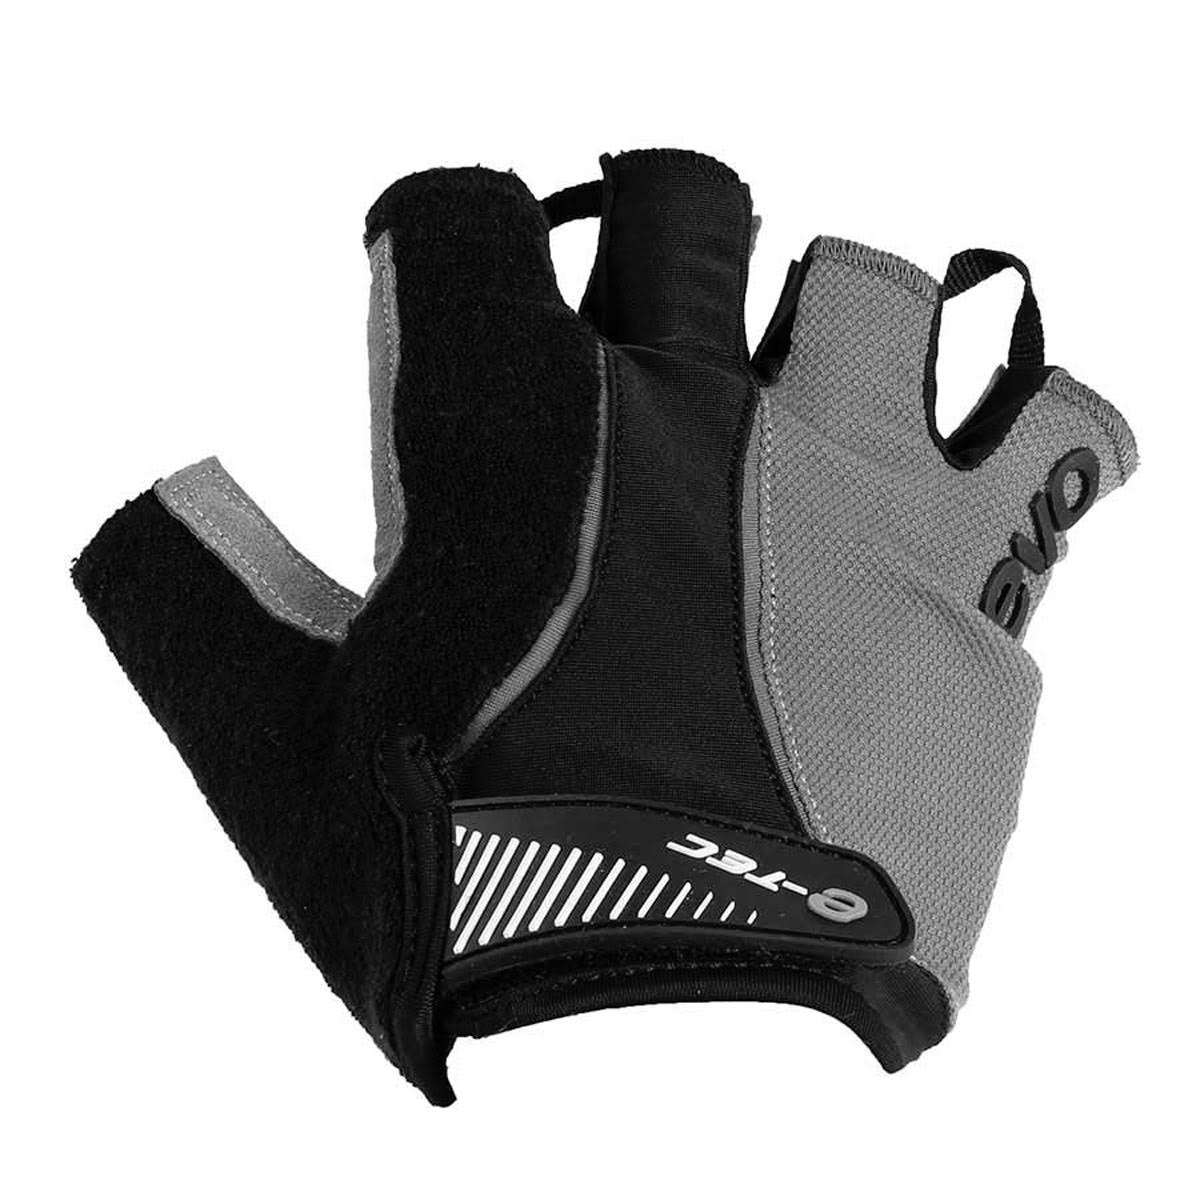 Evo E-tec Attack Pro Gel Gloves - Black/Gray, Medium